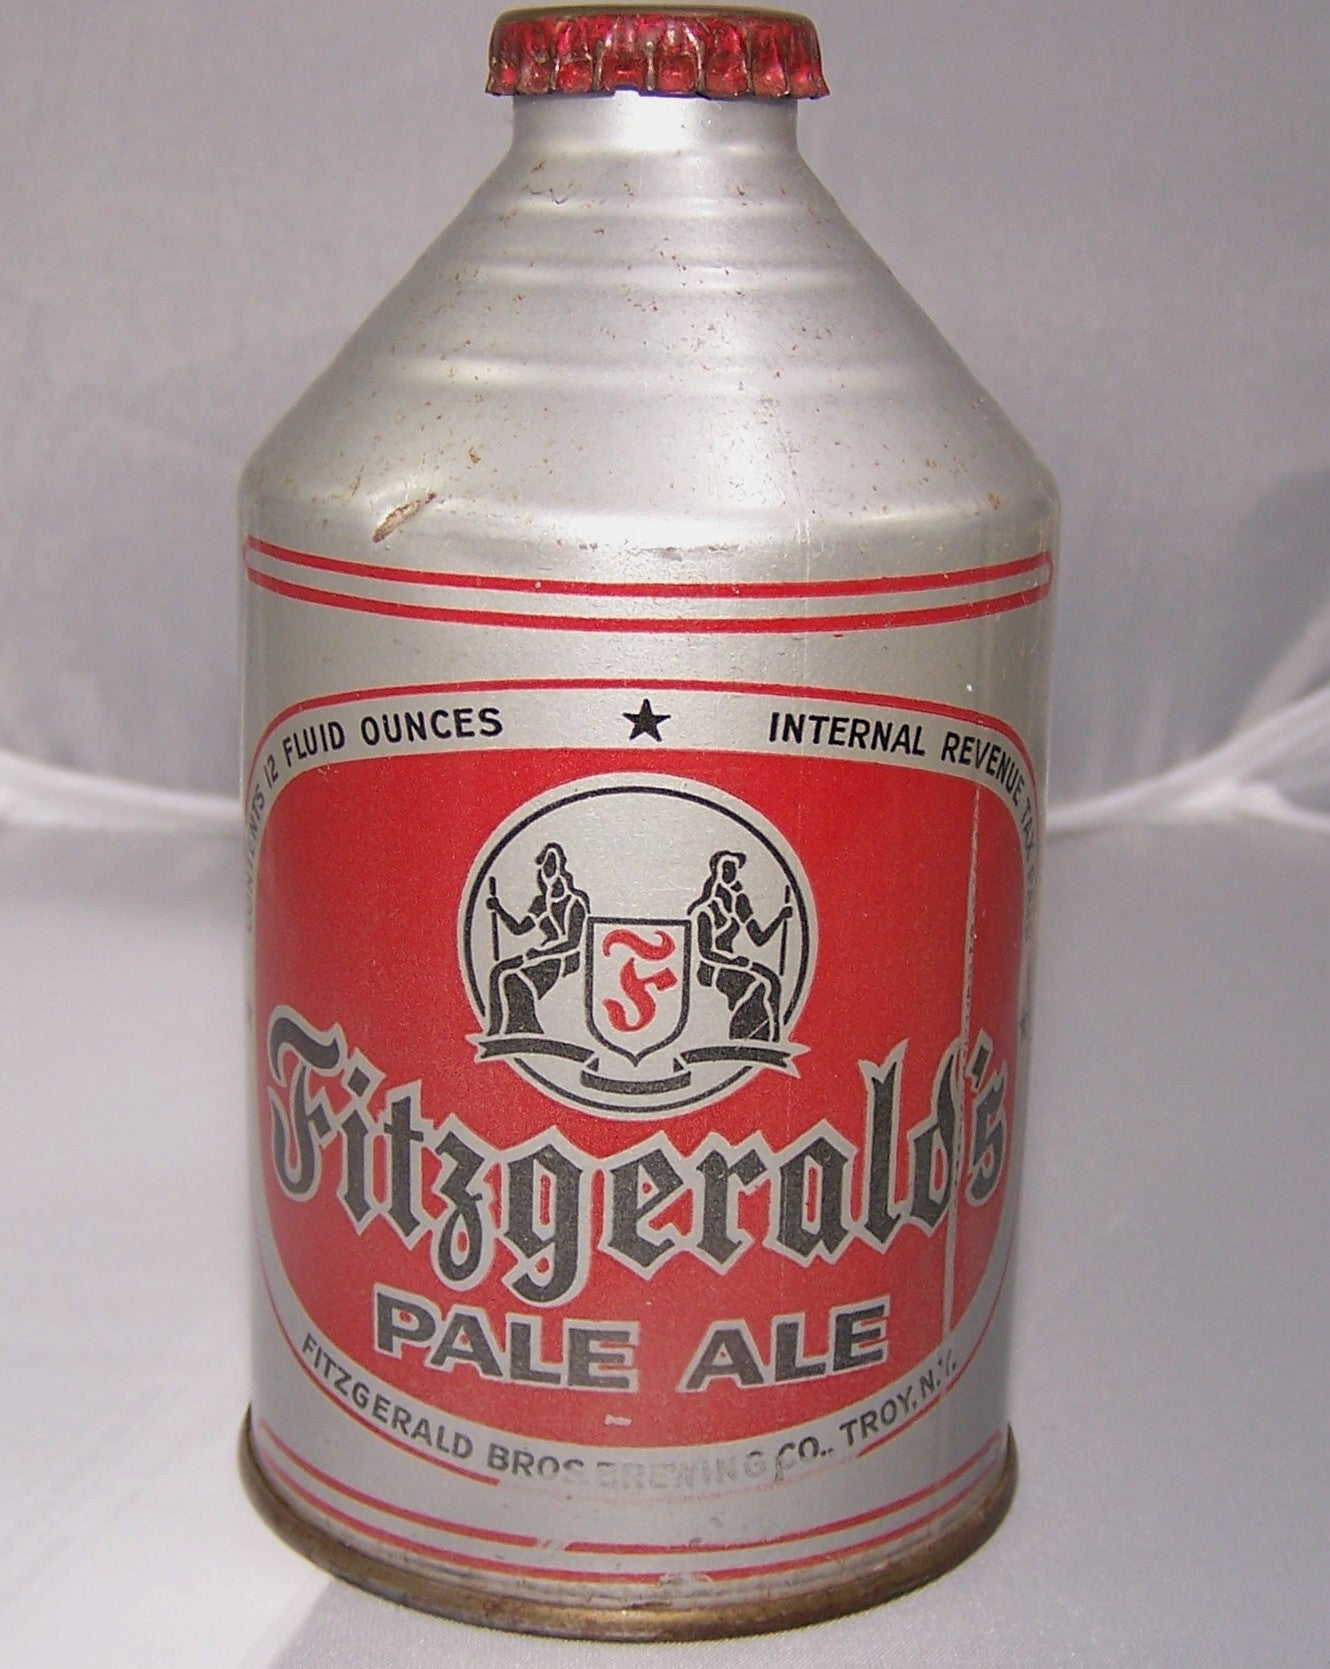 Fitzgerald's Pale Ale, USBC 193-31, Grade 1/1- Sold on 01/29/17